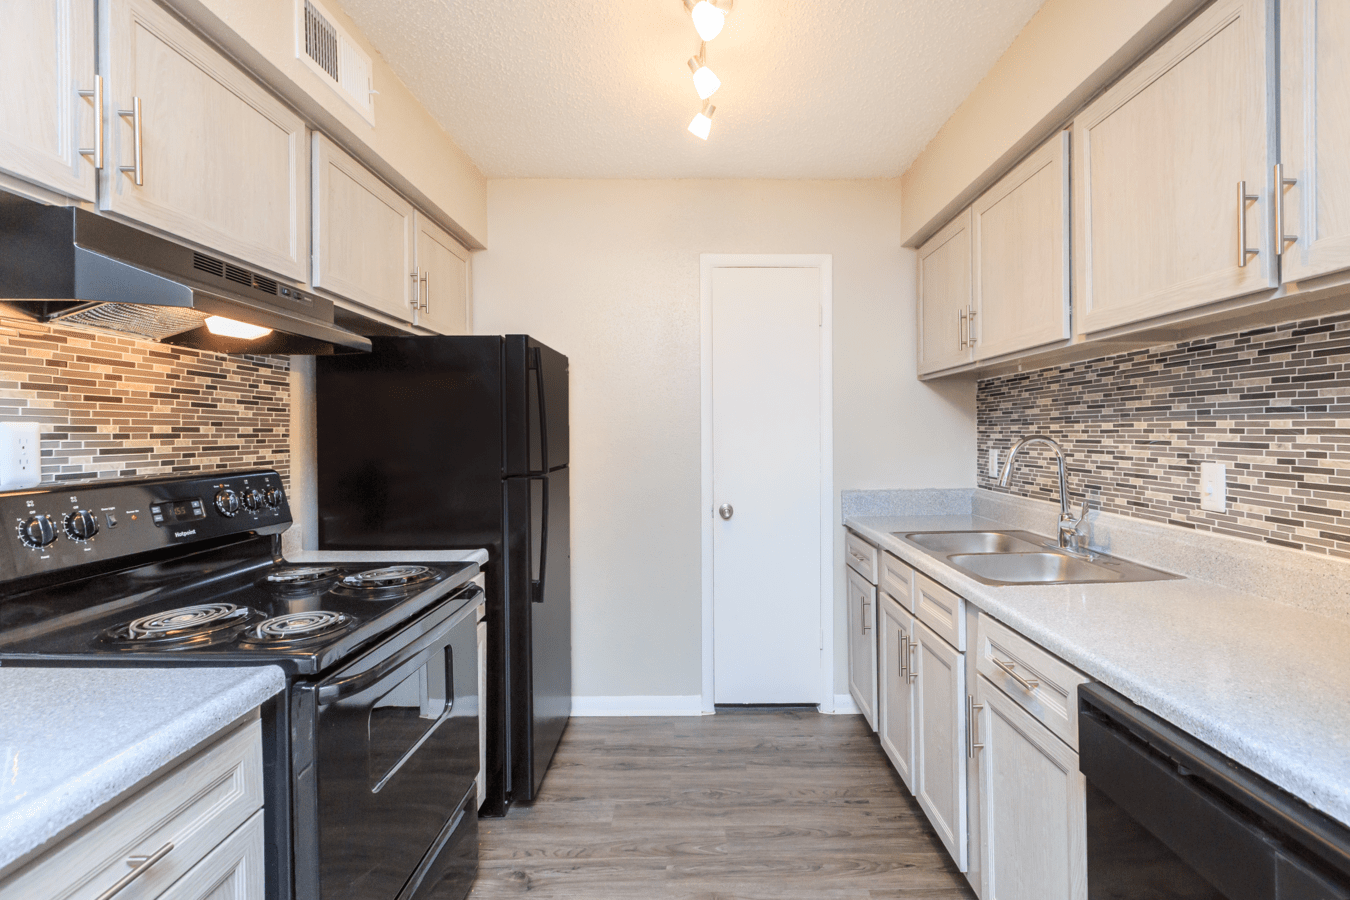 2 Bedrooms 1 Bathroom Apartment for rent at Envue Square in Houston, TX